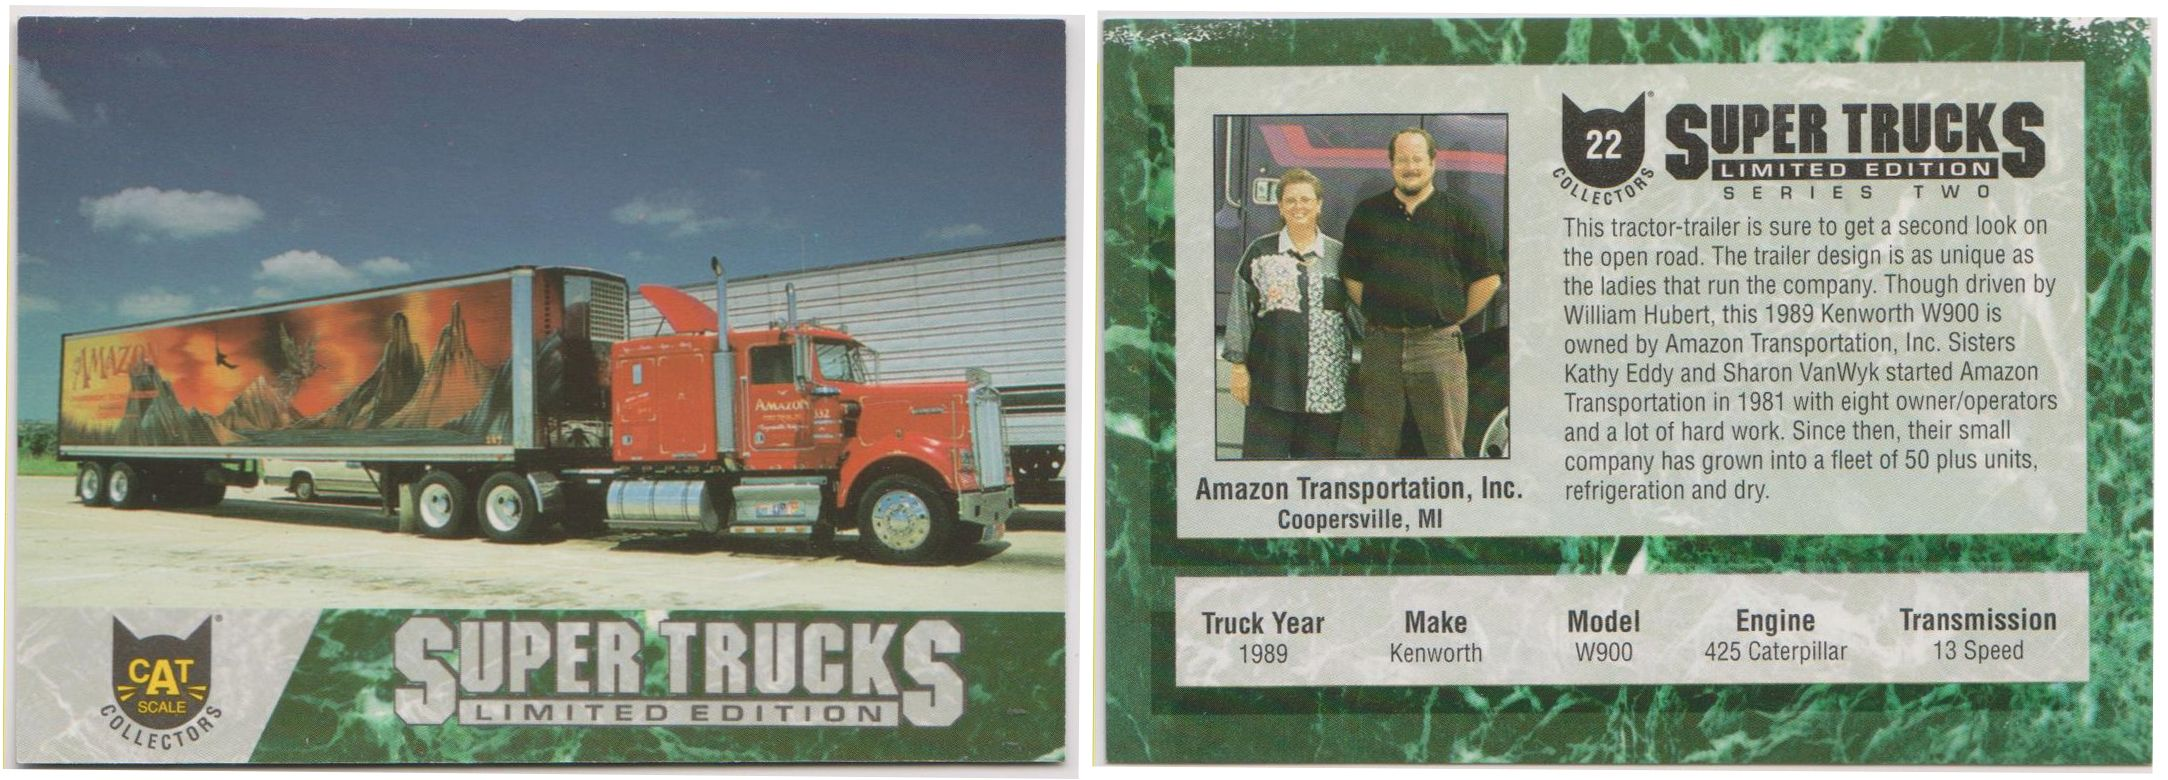 Series 2 Card 22 1989 Kenworth W900 (With images